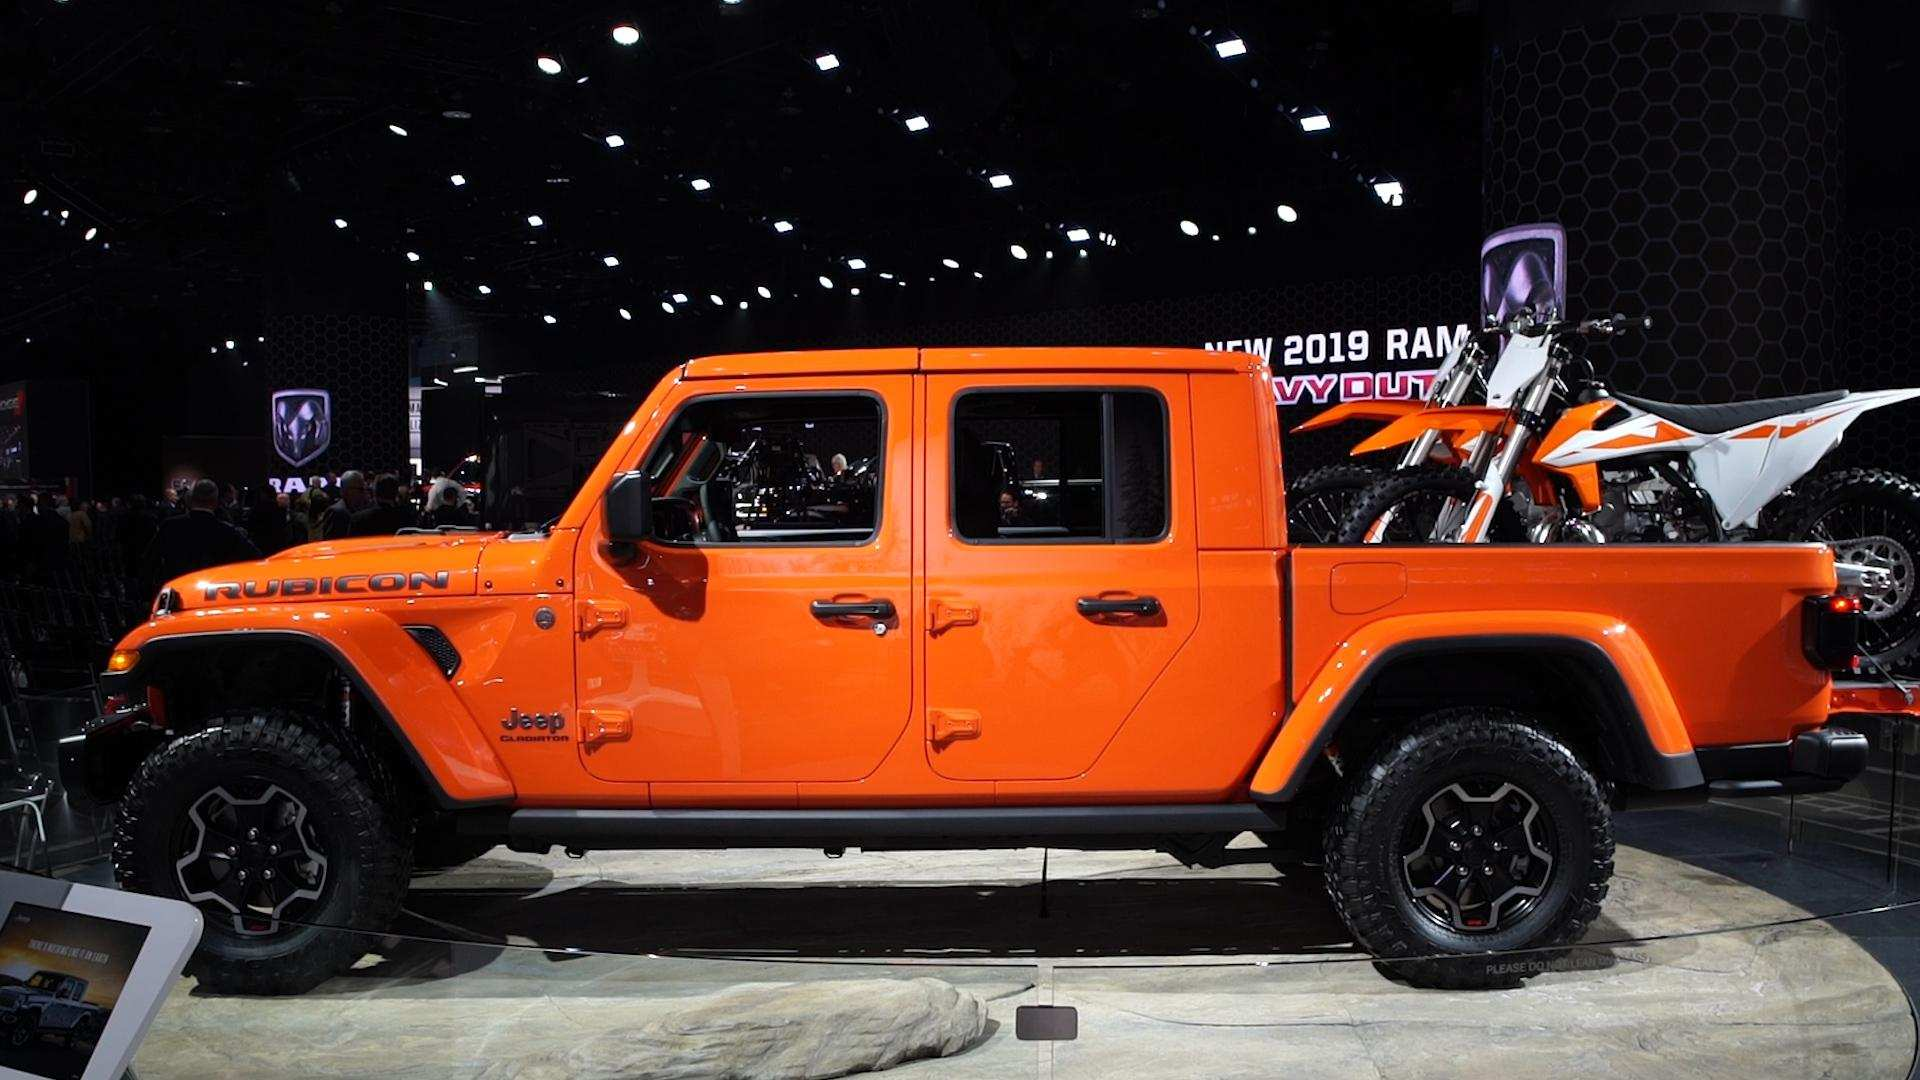 73 Best Jeep Truck 2020 Towing Capacity Images